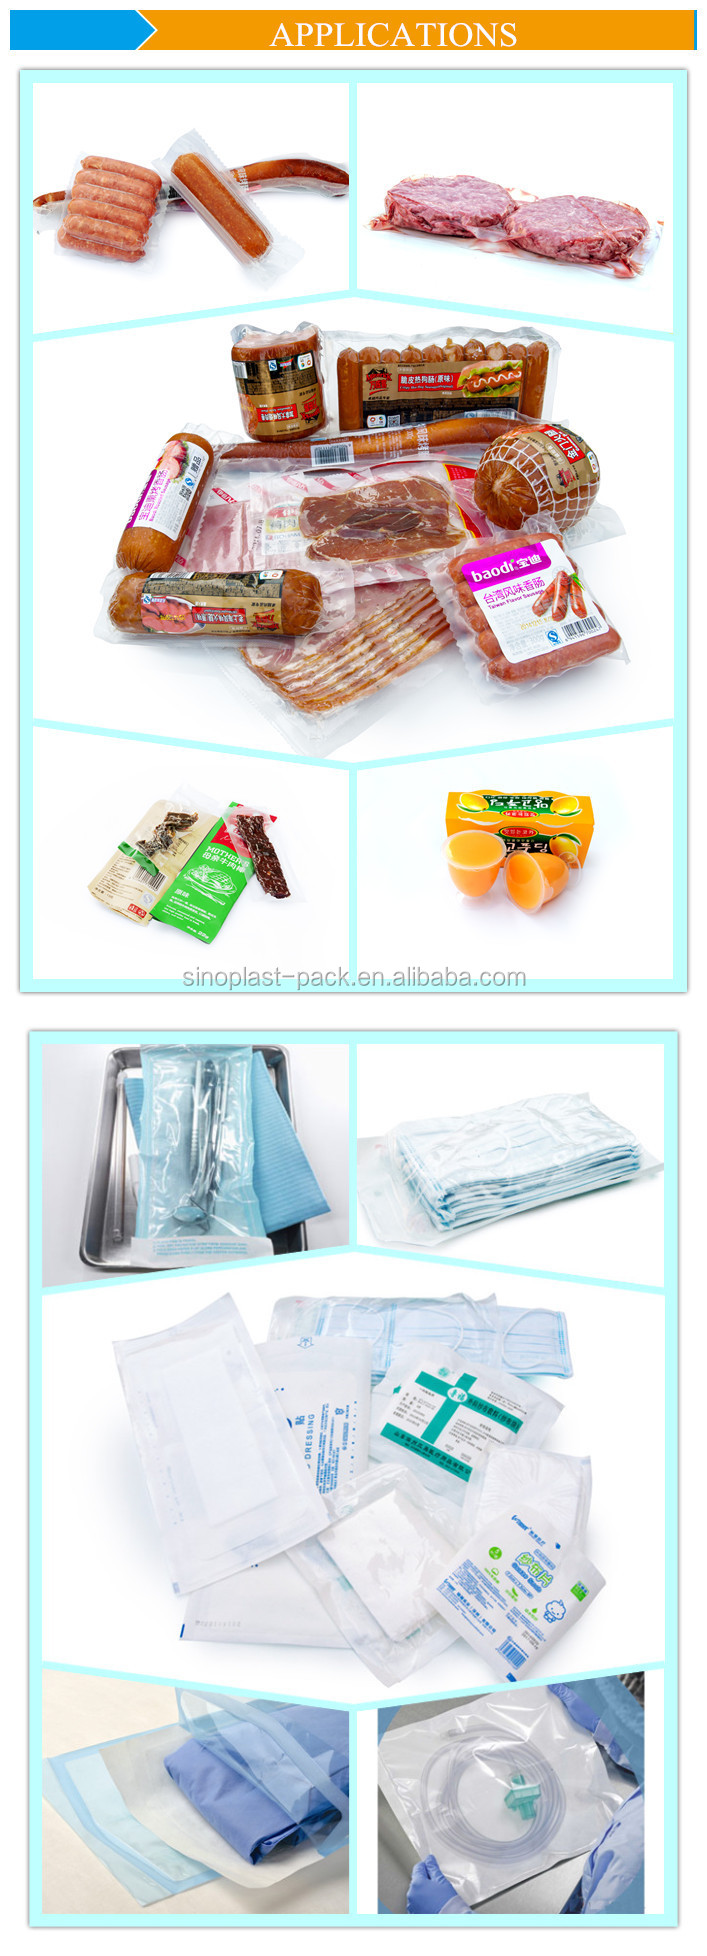 cast film,plastic film, food packaging, medical application.jpg